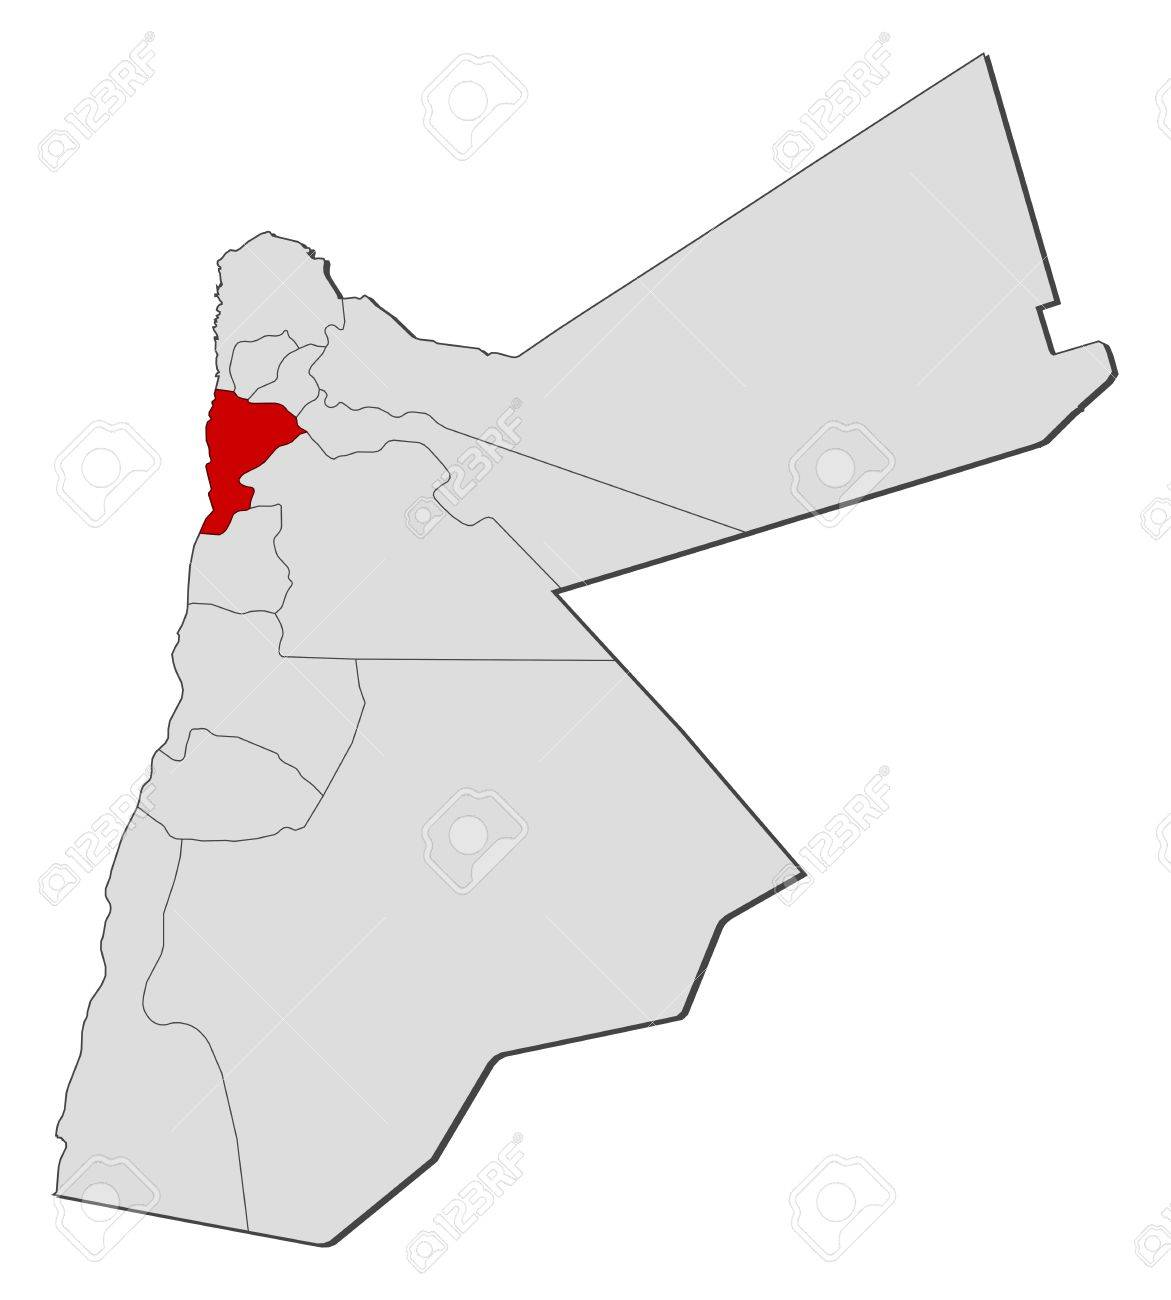 Jordan Political Map.Political Map Of Jordan With The Several Governorates Where Balqa